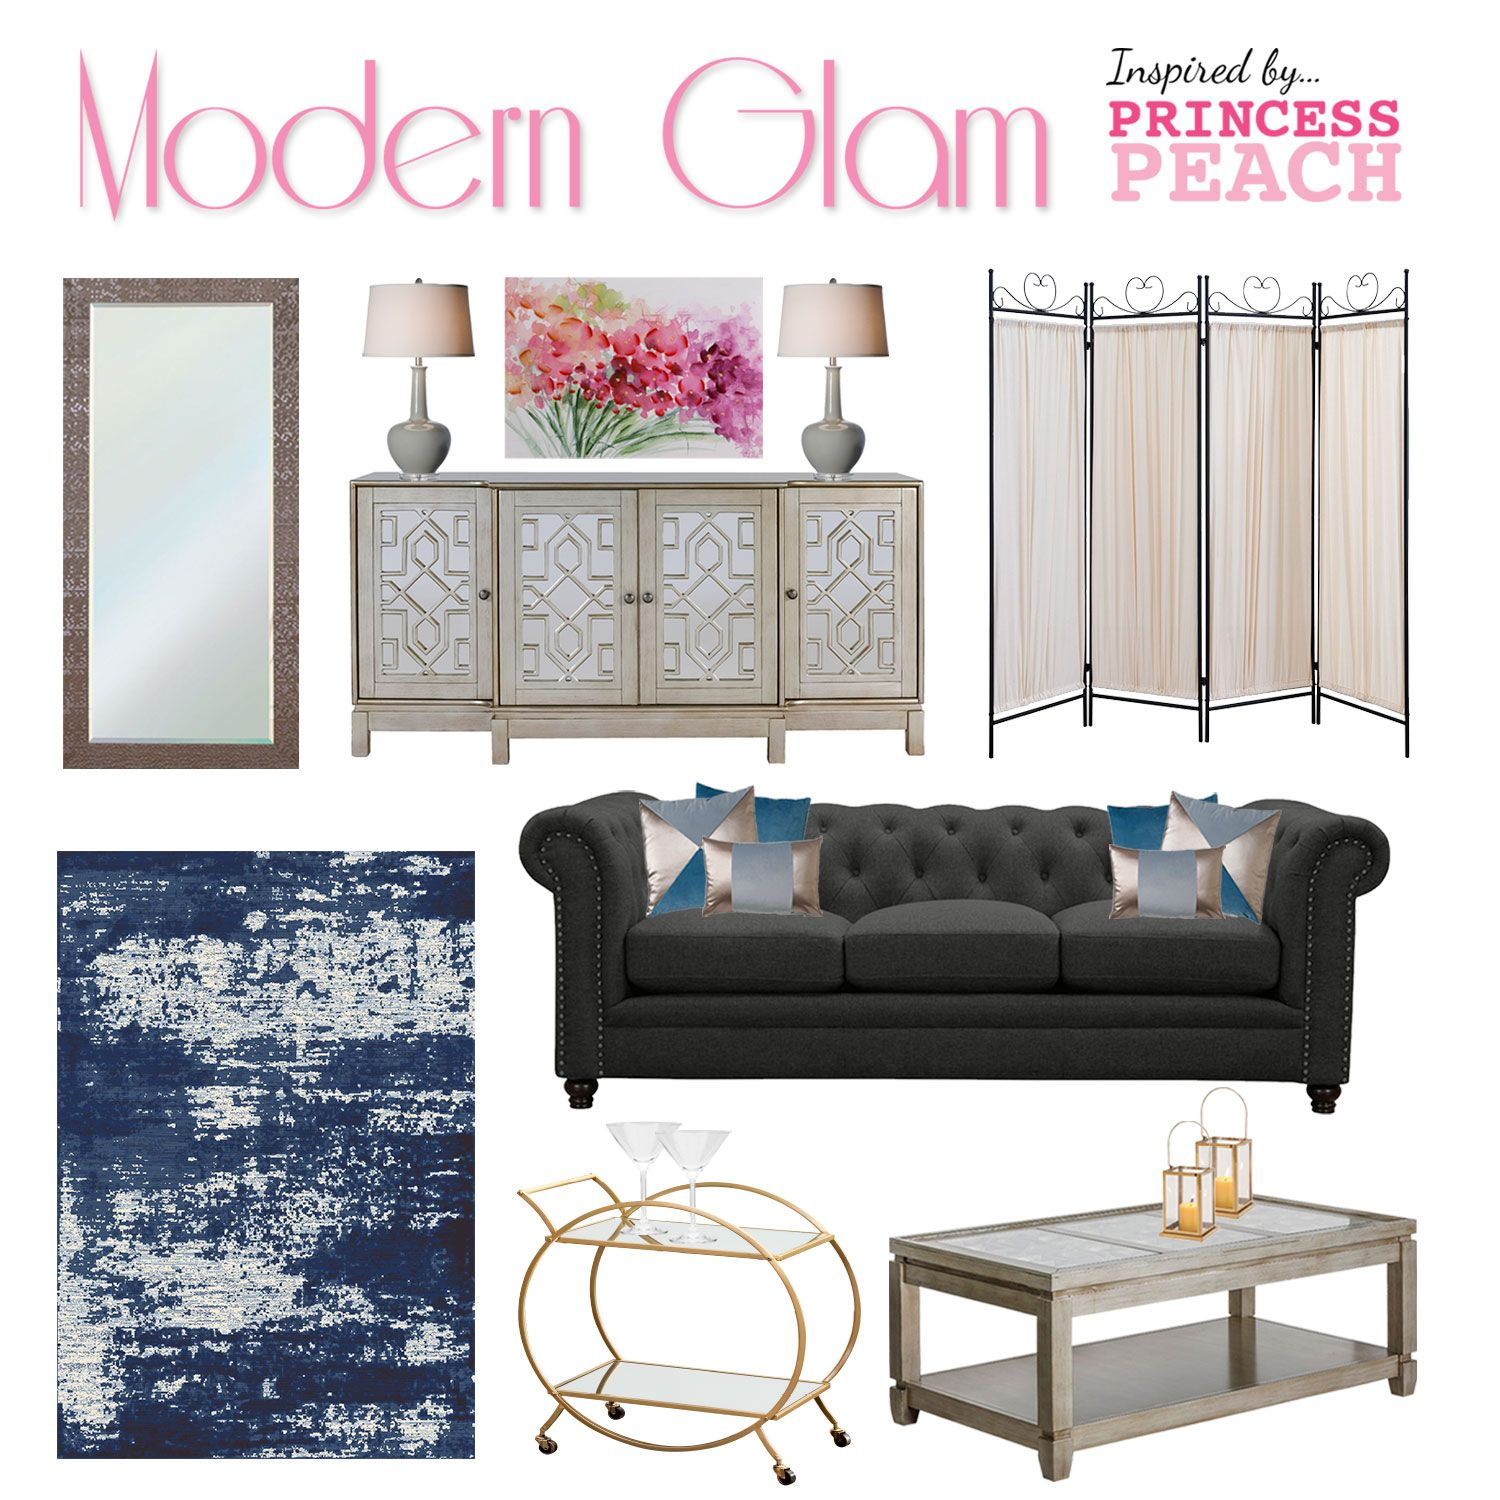 modern glam furniture design inspired by what we think princess